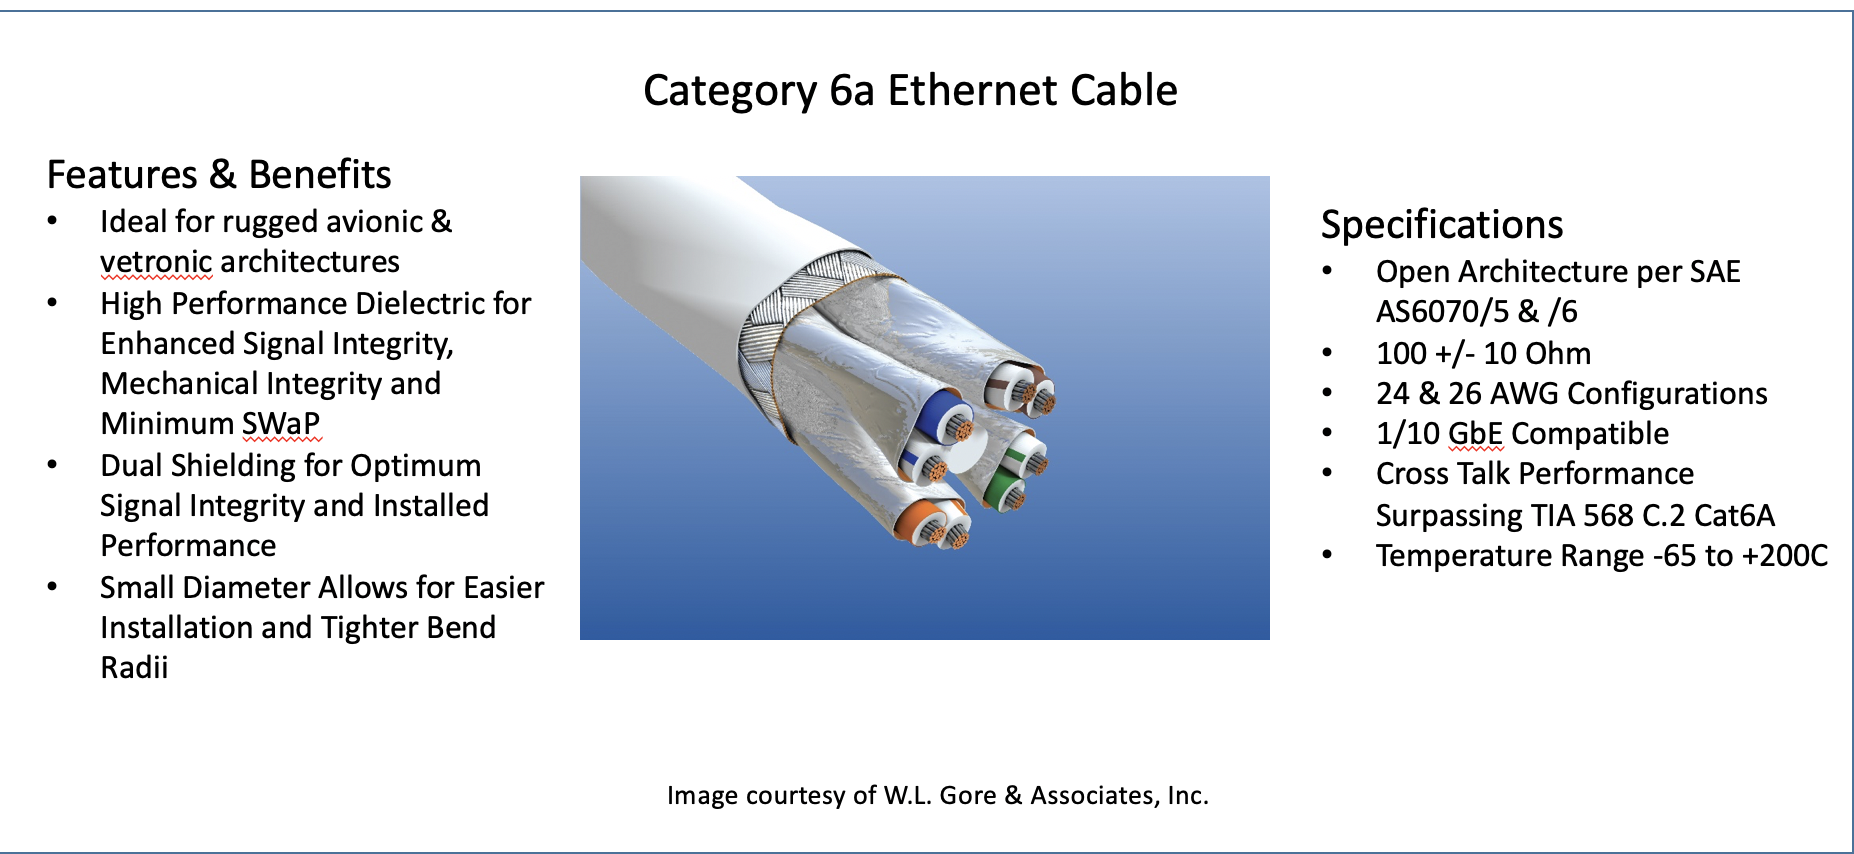 Engineering Integrity Into Critical Data Rate Connectivity Cross Over Cable Diagram Zc Hardware Break Down Pinterest Figure 1 Category 6a Ethernet Cables